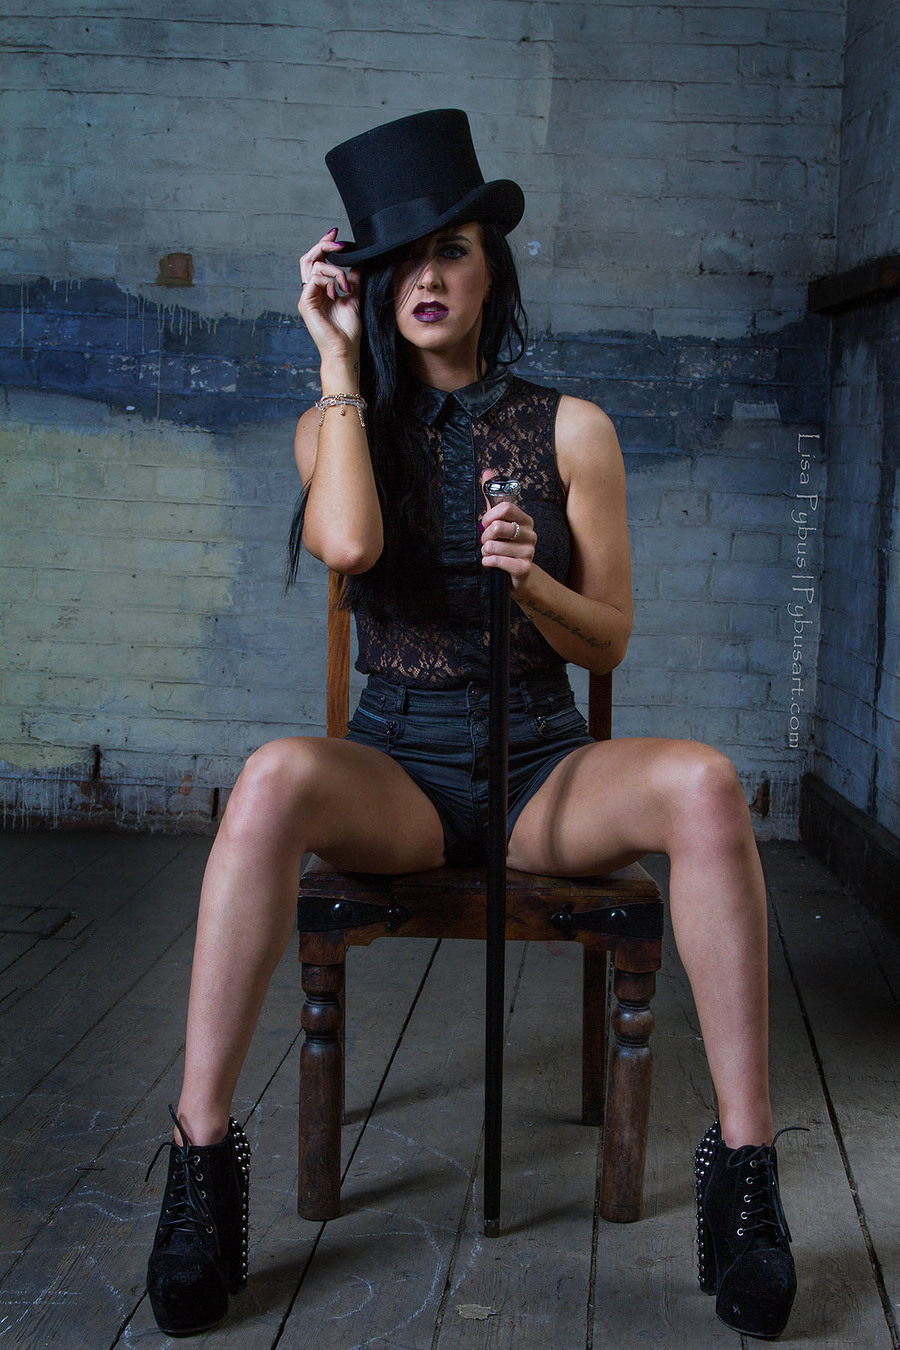 In charge / Photography by Lisa Ford, Taken at The Pit Studio UK / Uploaded 23rd June 2015 @ 09:08 PM